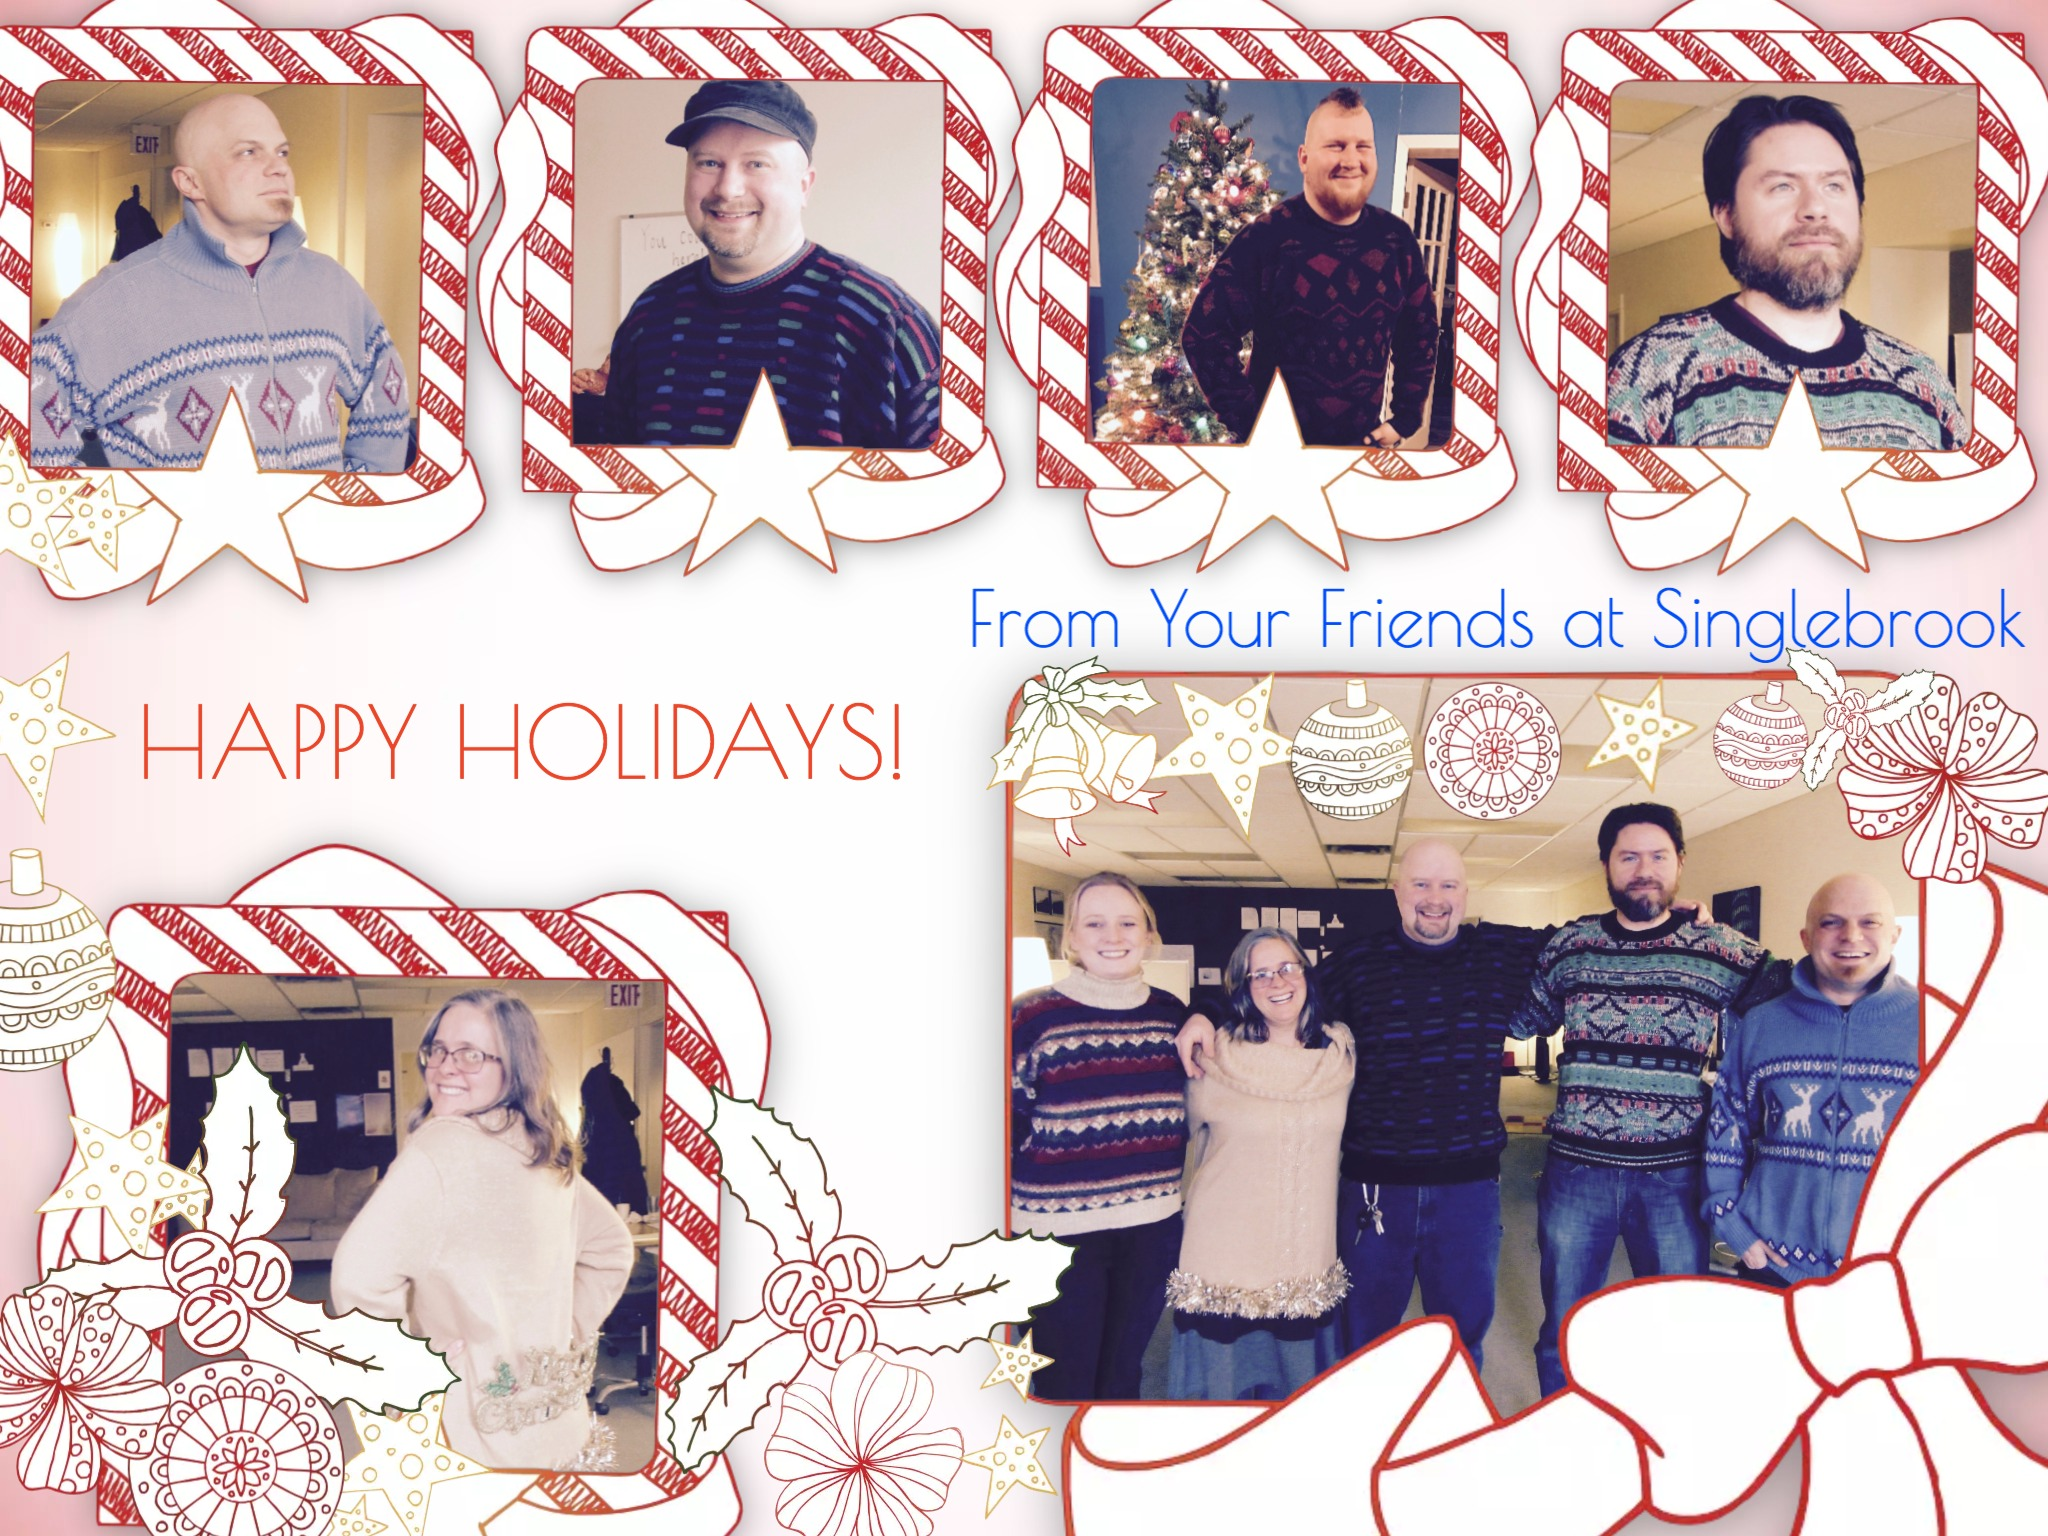 Holiday collage featuring our staff in awesome sweaters